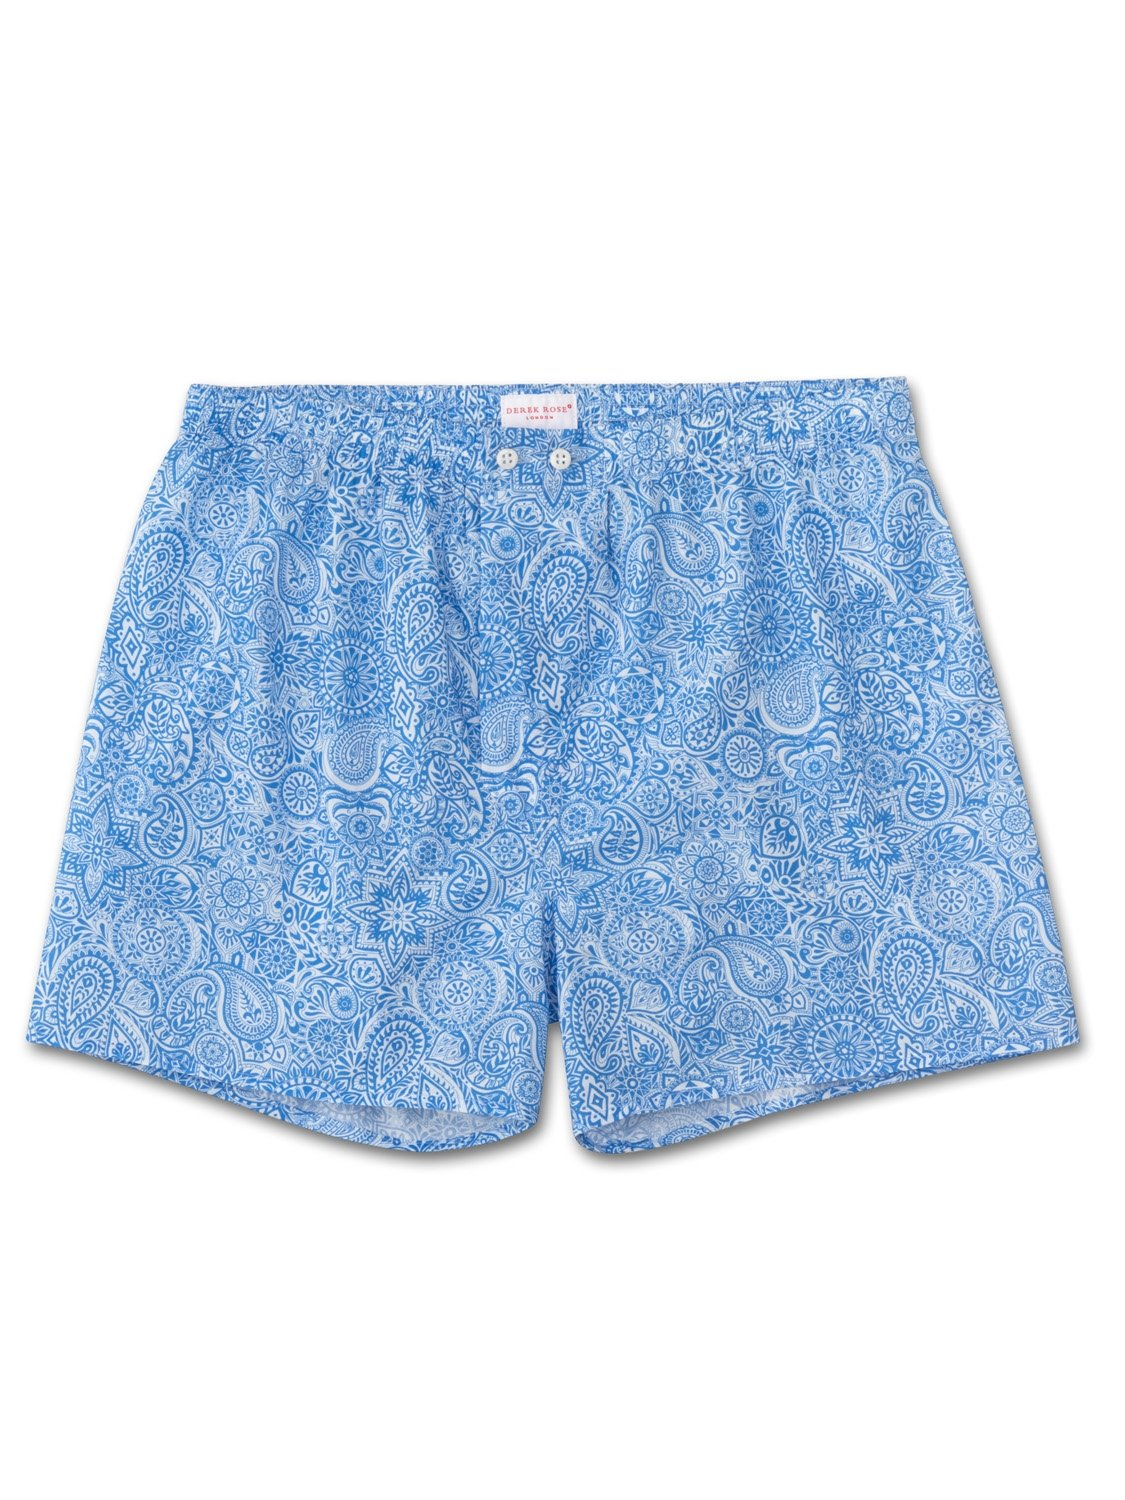 Men's Classic Fit Boxer Shorts Ledbury 6 Cotton Batiste Blue